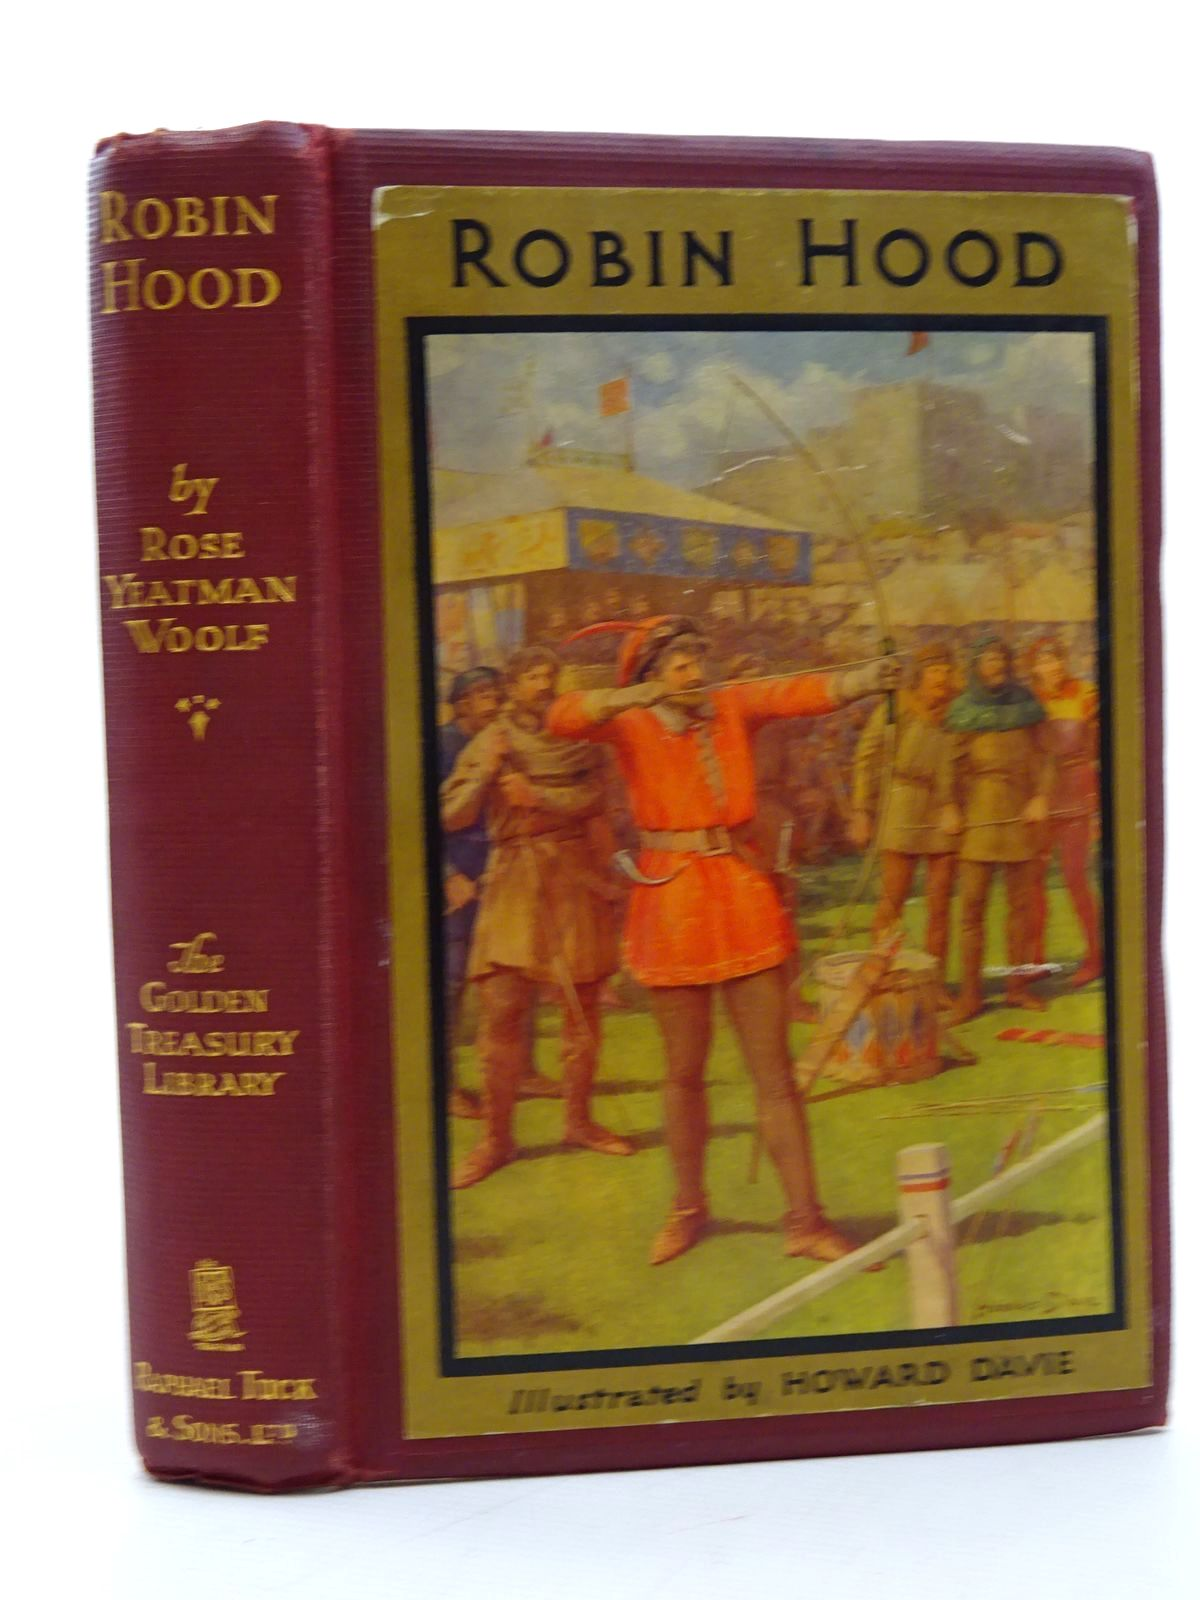 Photo of ROBIN HOOD AND HIS LIFE IN THE MERRY GREENWOOD written by Woolf, Rose Yeatman illustrated by Davie, Howard published by Raphael Tuck & Sons (STOCK CODE: 2125324)  for sale by Stella & Rose's Books